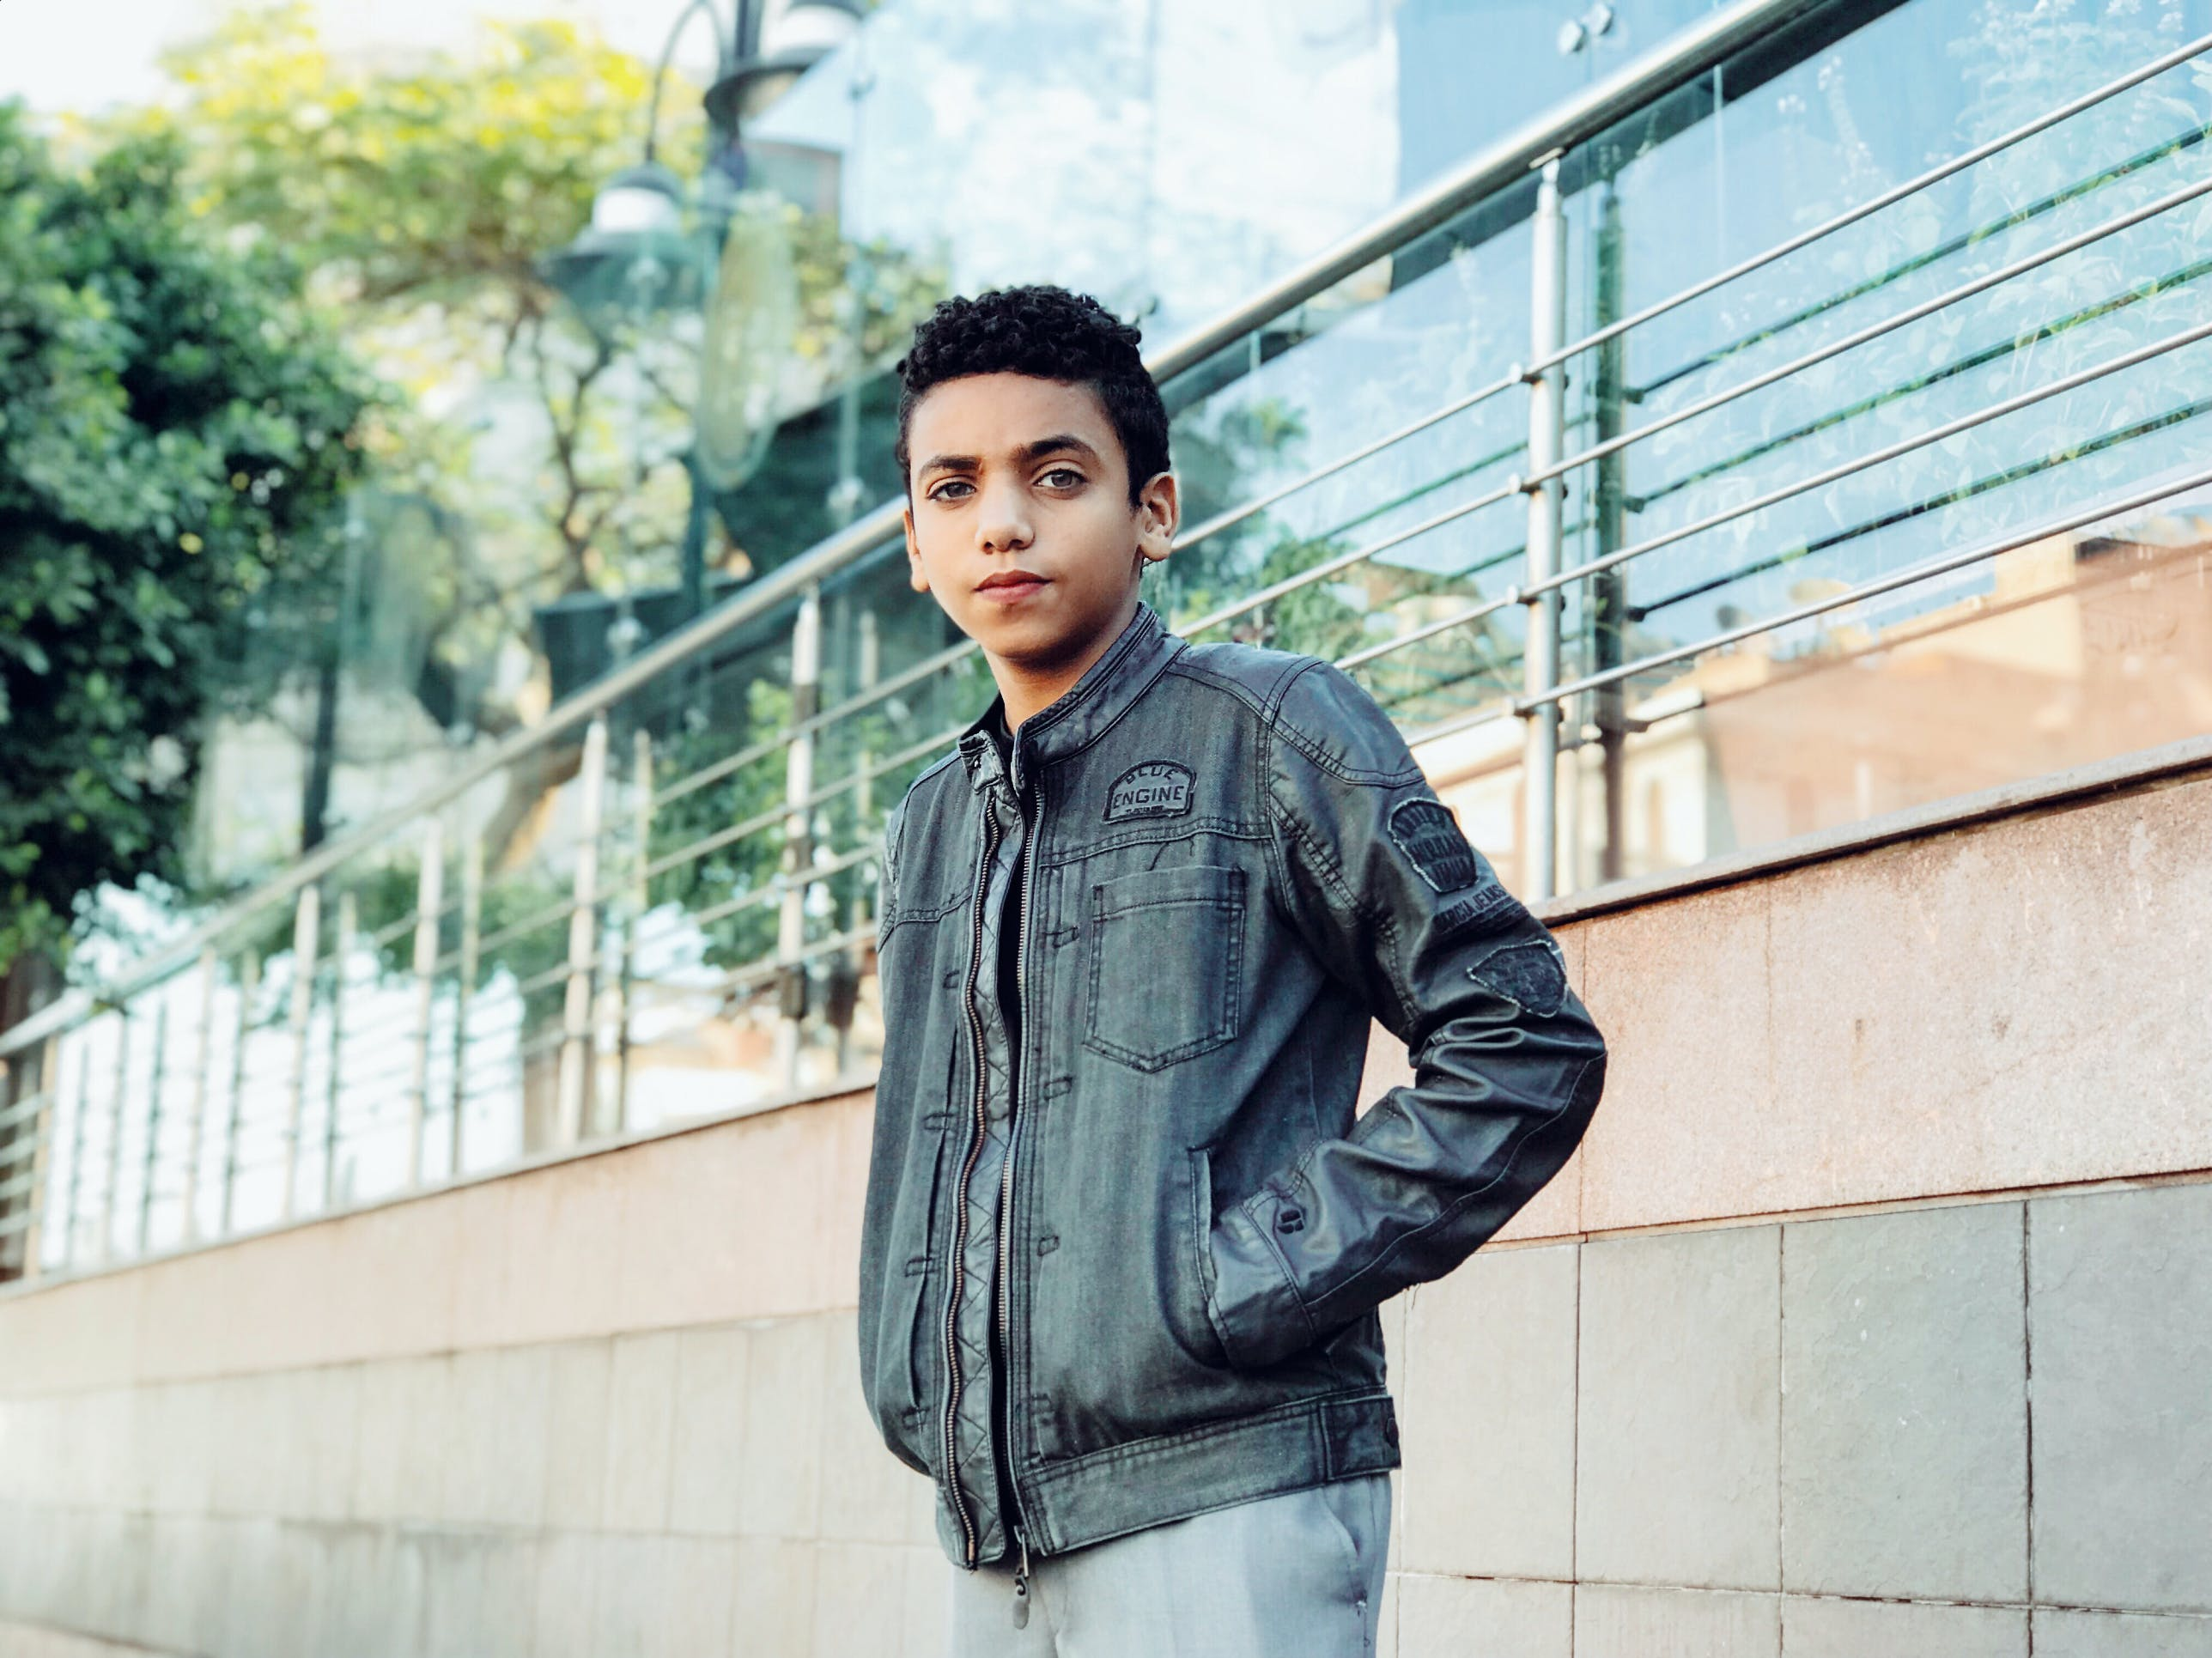 Photo of Boy Wearing Jacket